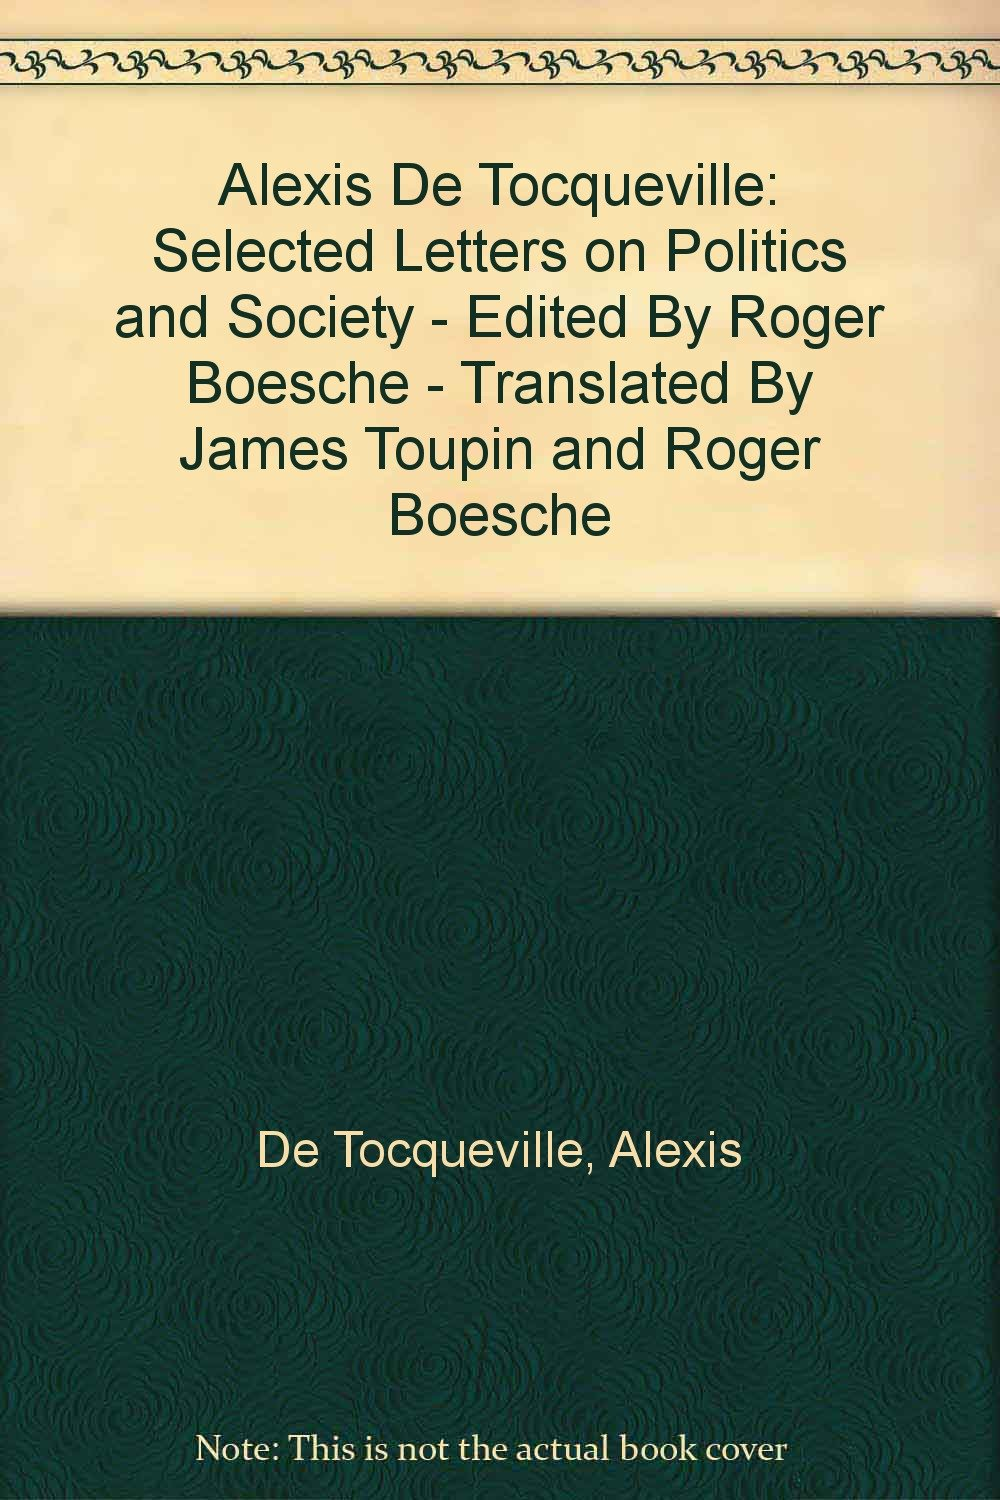 Selected Letters on Politics and Society